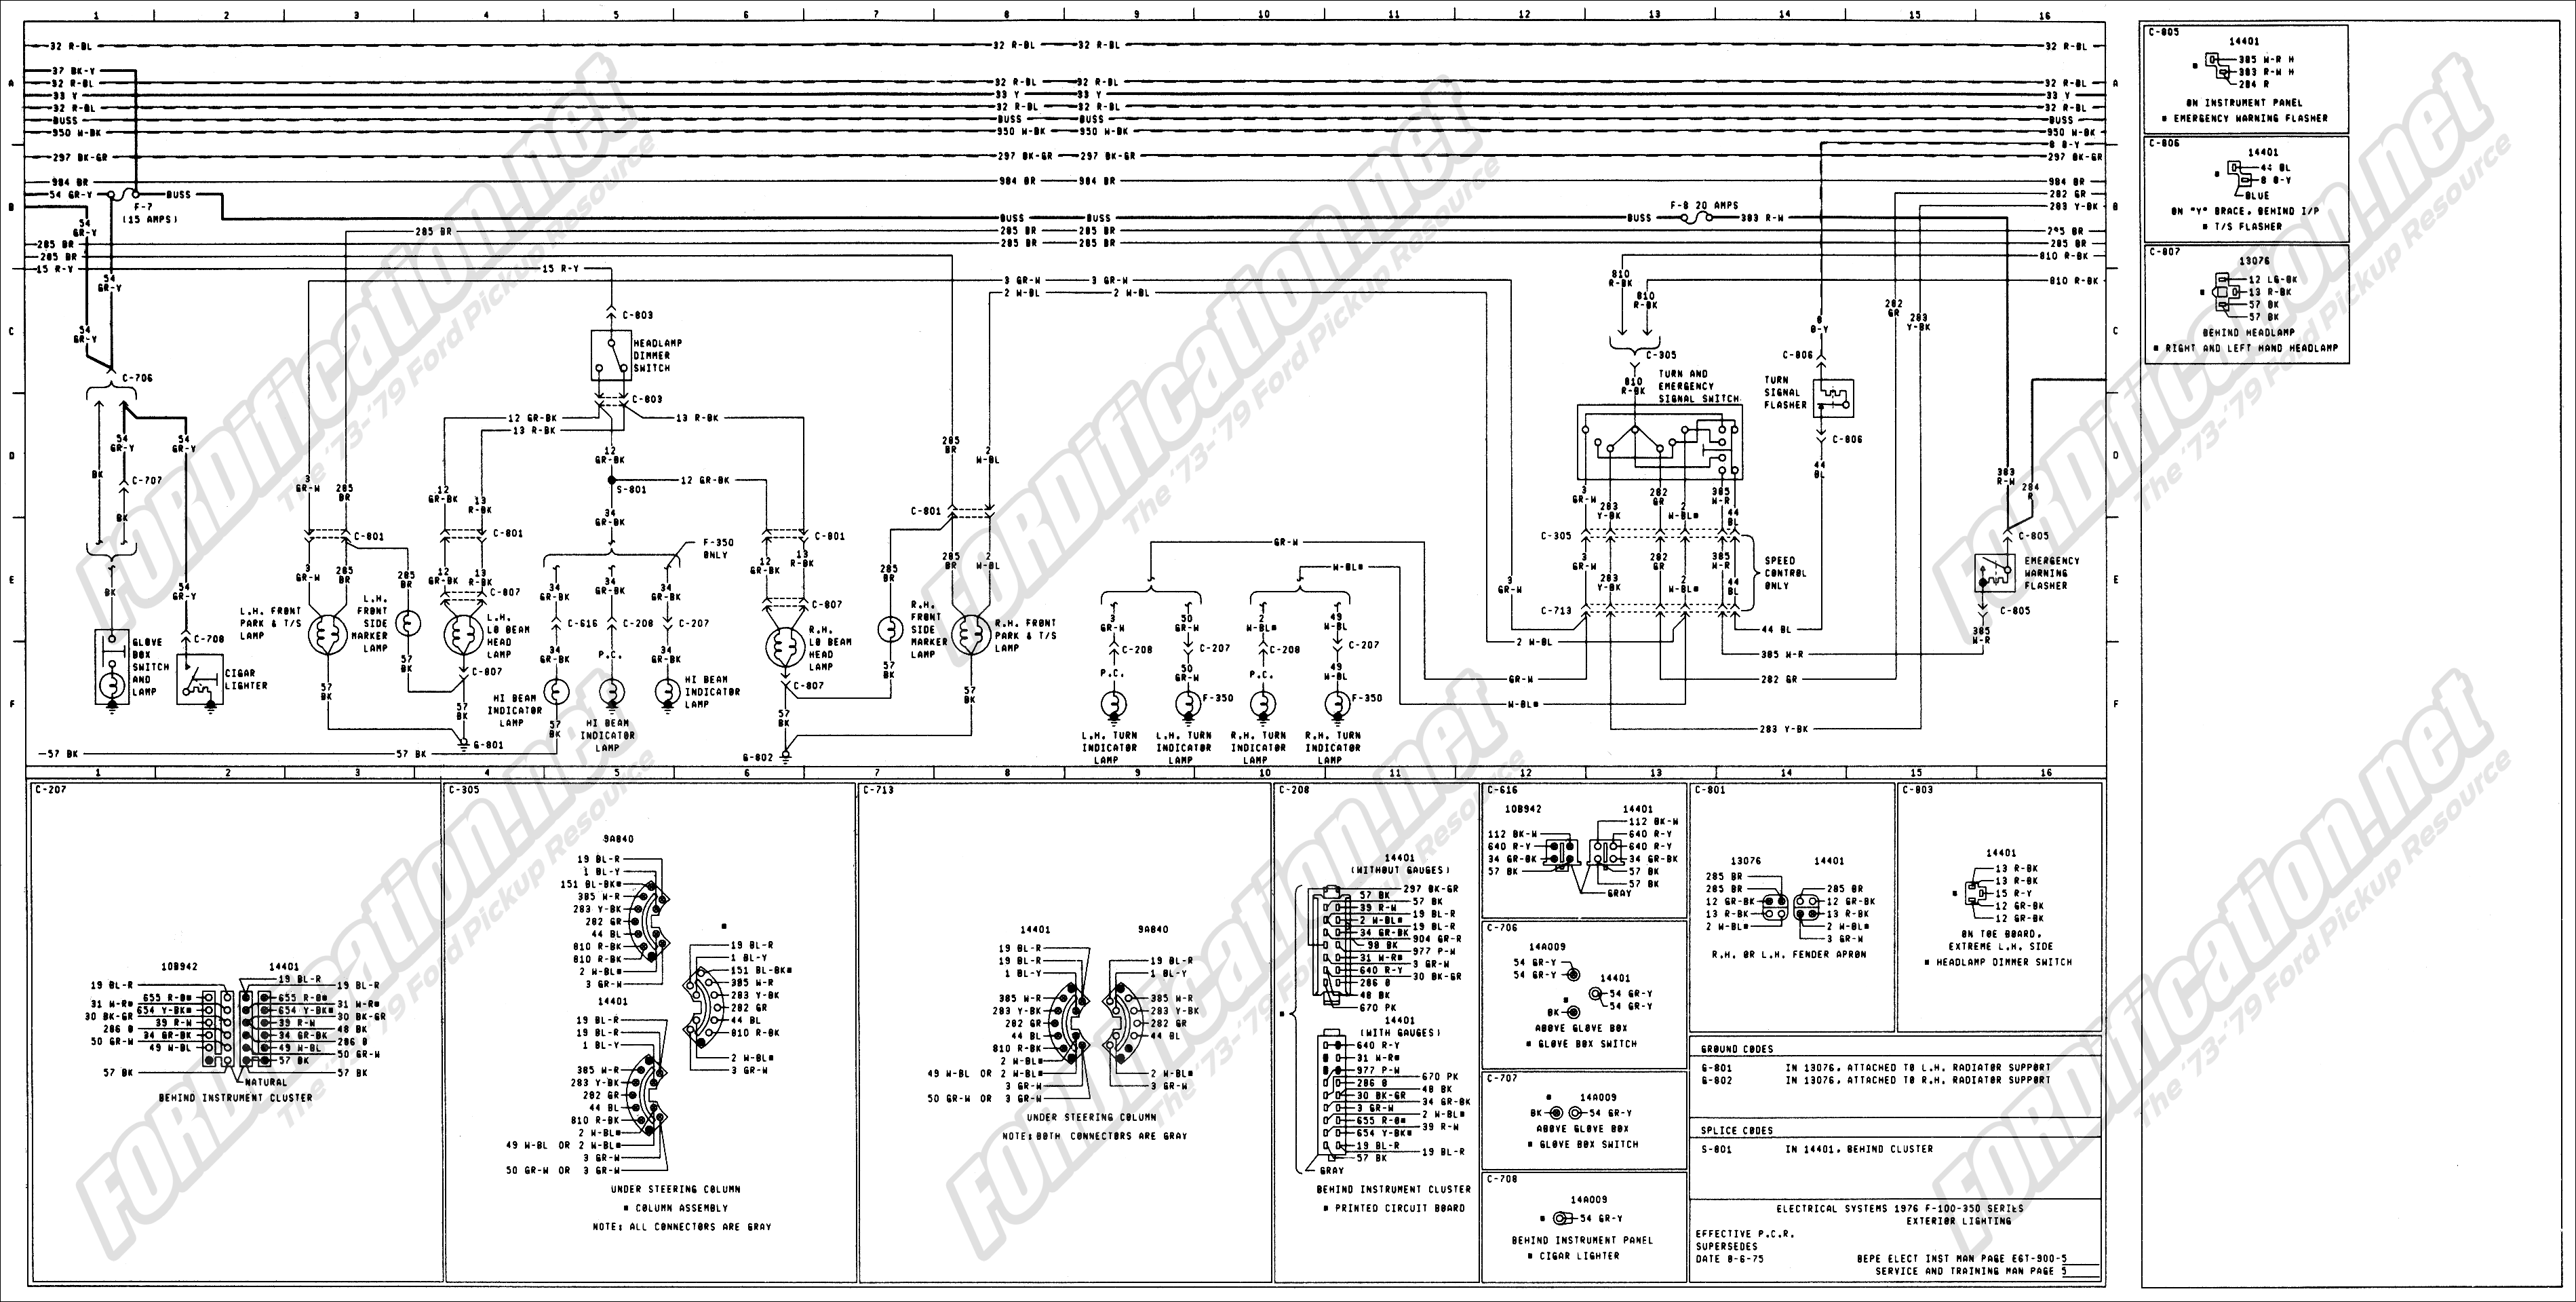 1977 ford wiring schematic wiring diagram data today1977 ford wiring schematic wiring diagram experts 1977 ford bronco wiring schematic 1977 f100 wiring diagram